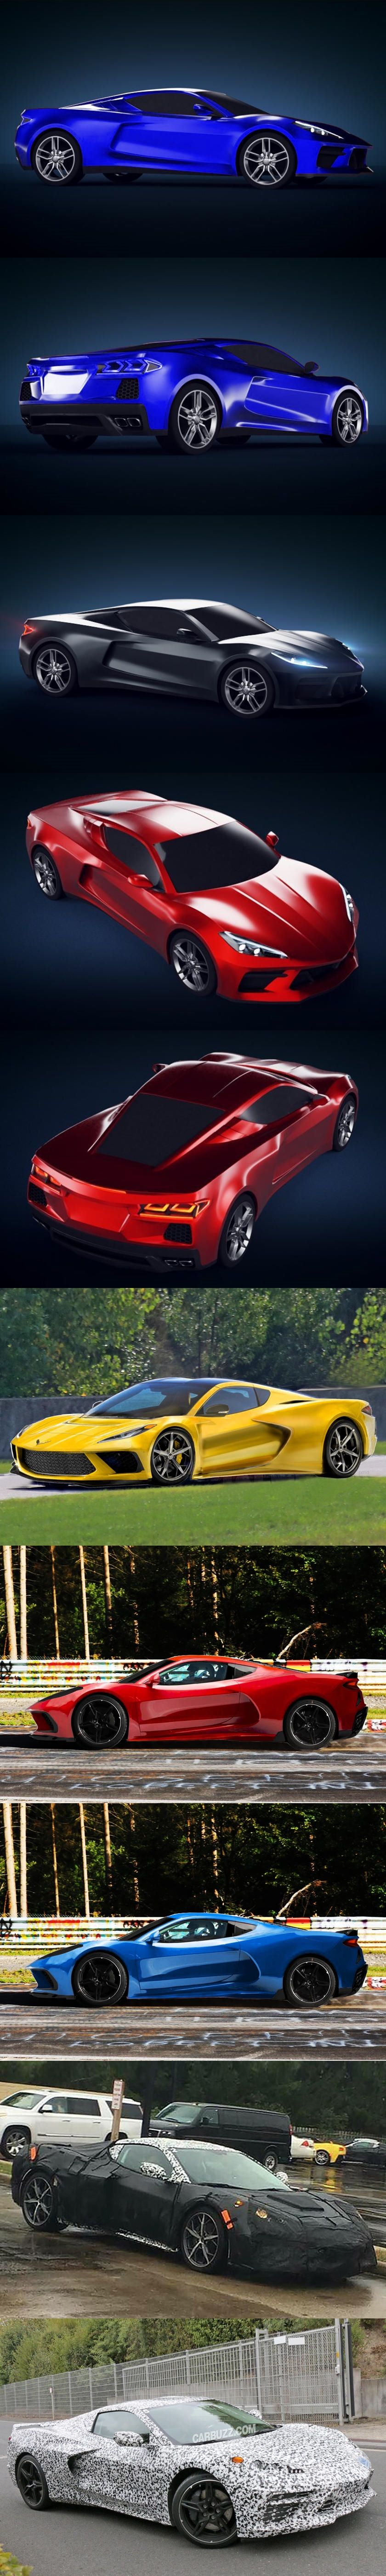 Insider Claims Corvette C8 Will Be Called 'Manta Ray'  Company